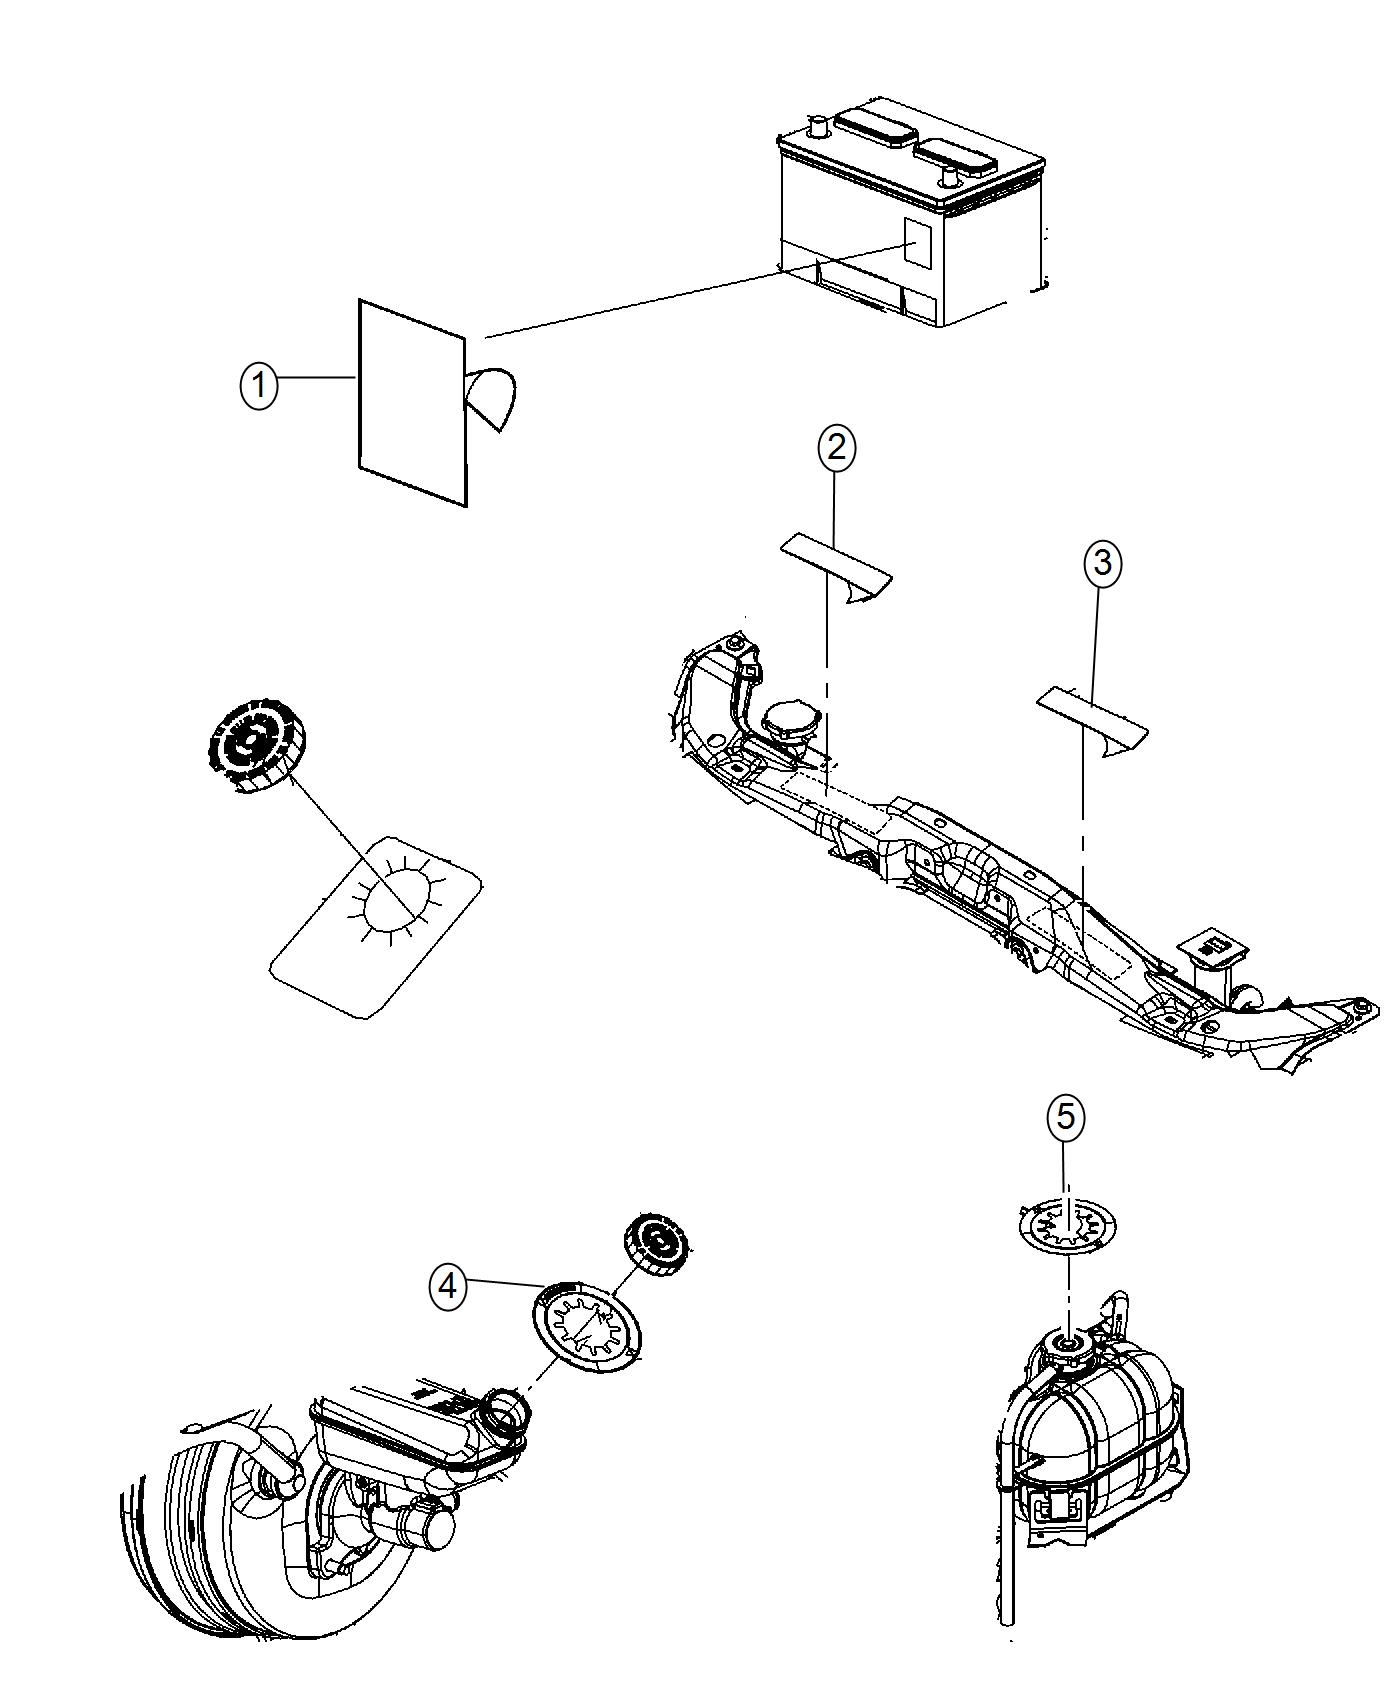 Dodge Durango Label Air Conditioning System Front